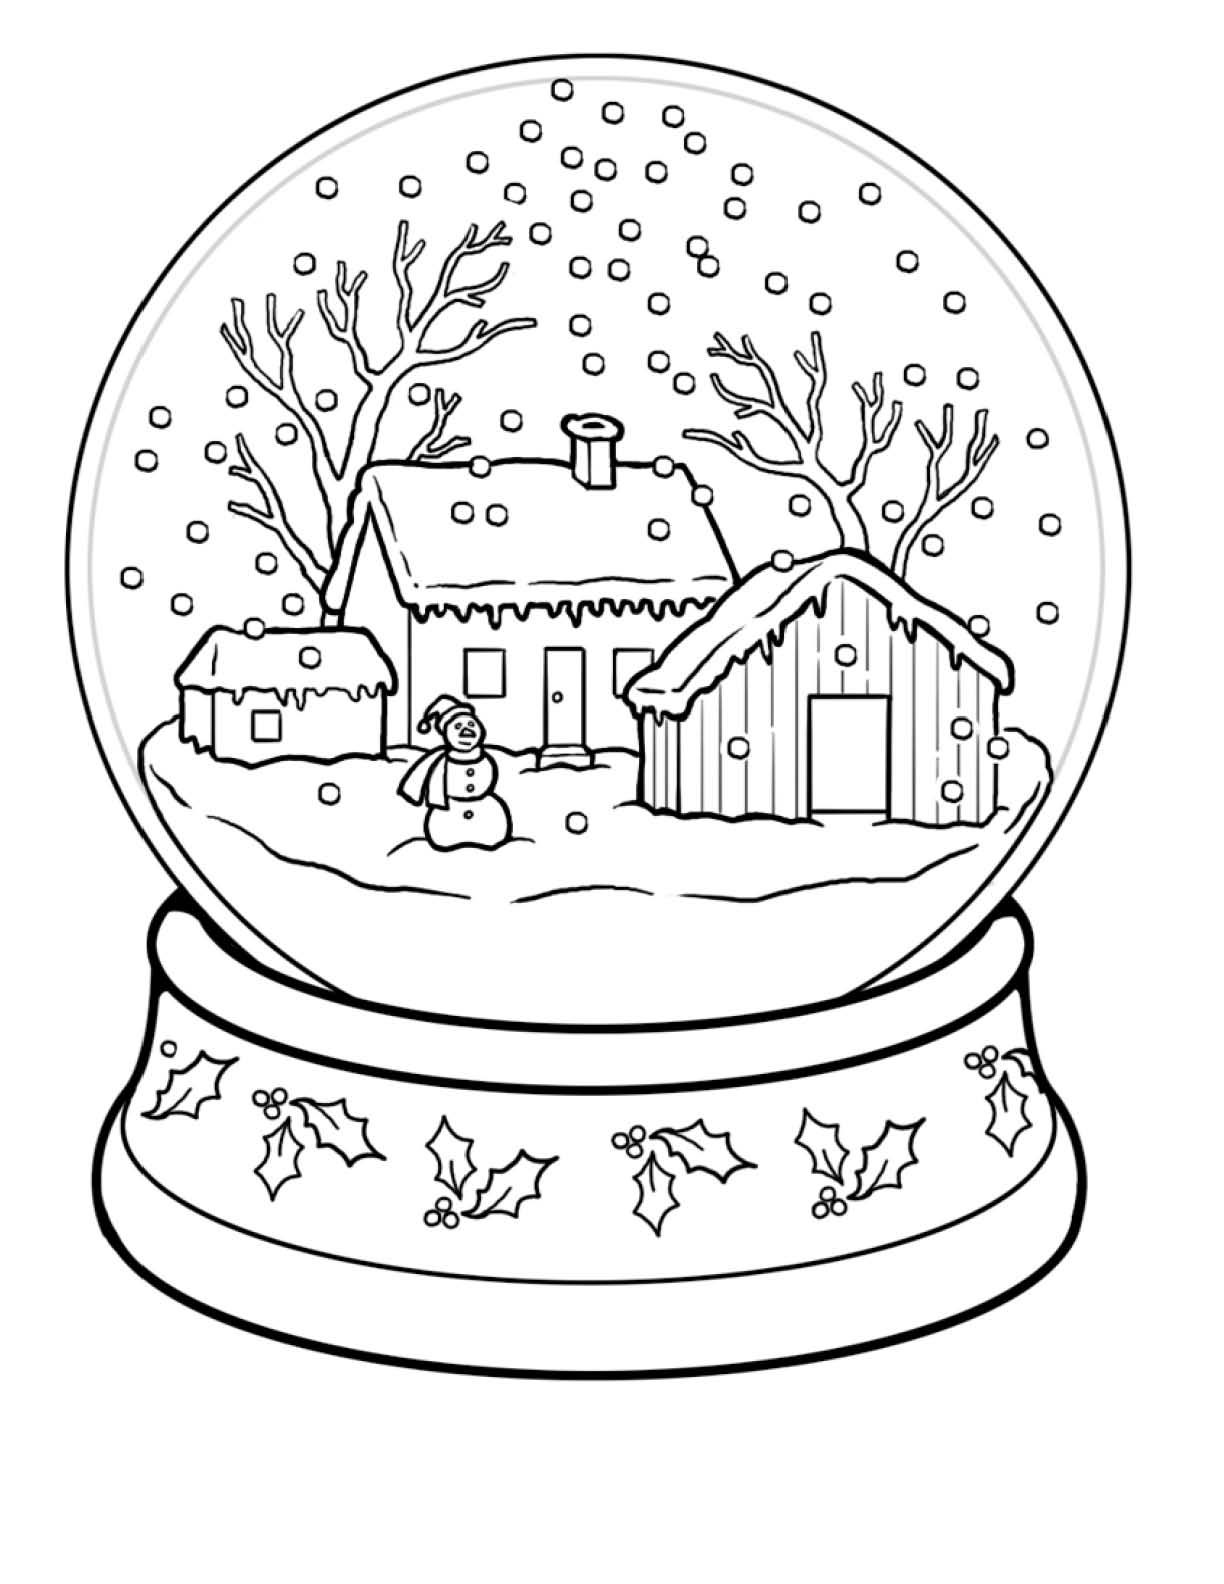 Winter coloring pages to download